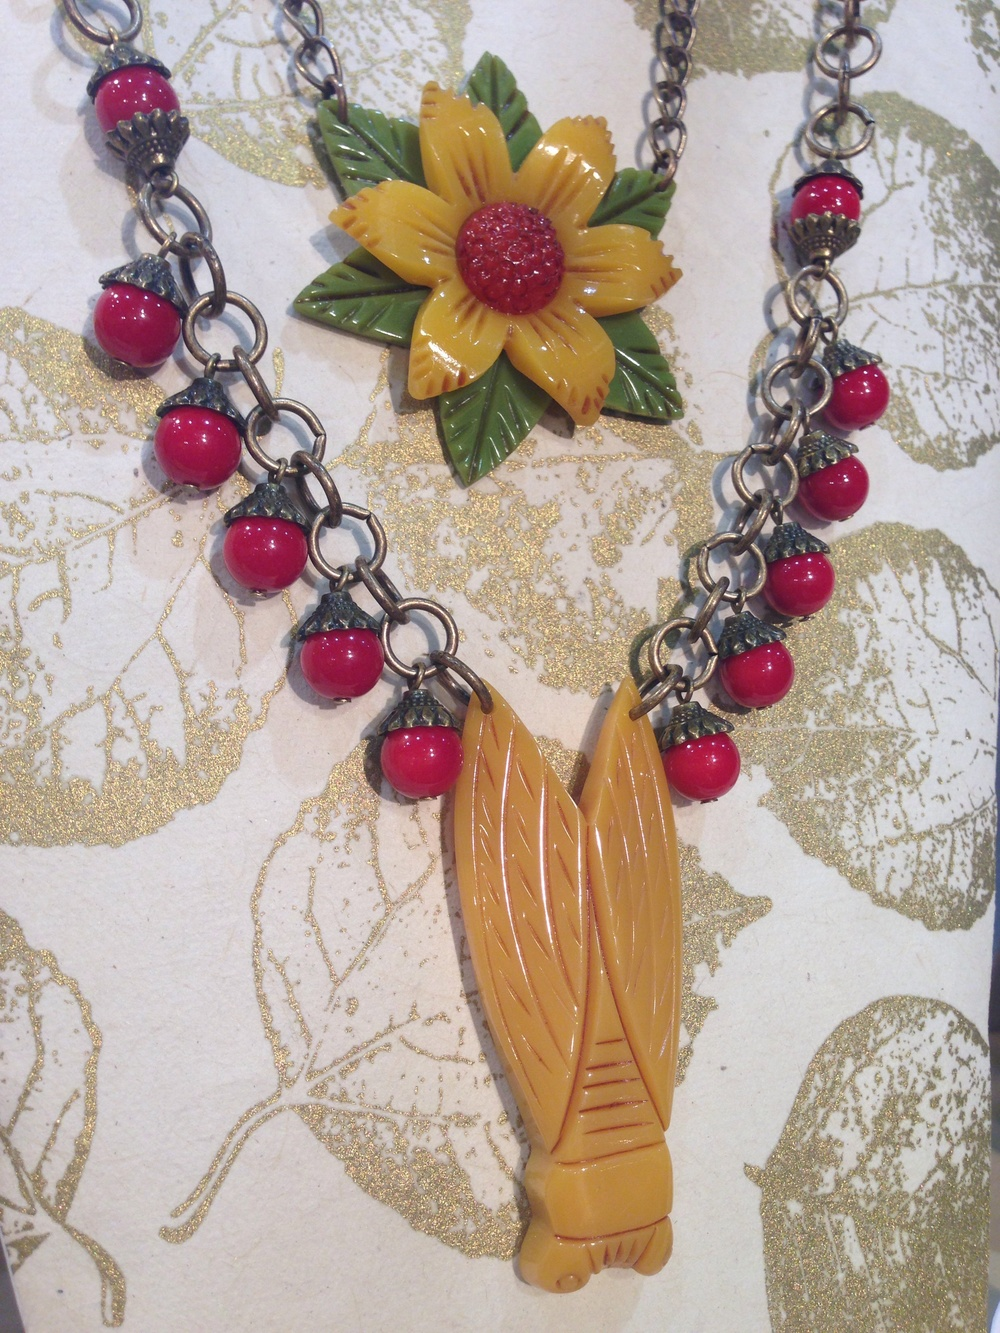 Cicada on chain with vintage beads. And tri-color flower necklace.